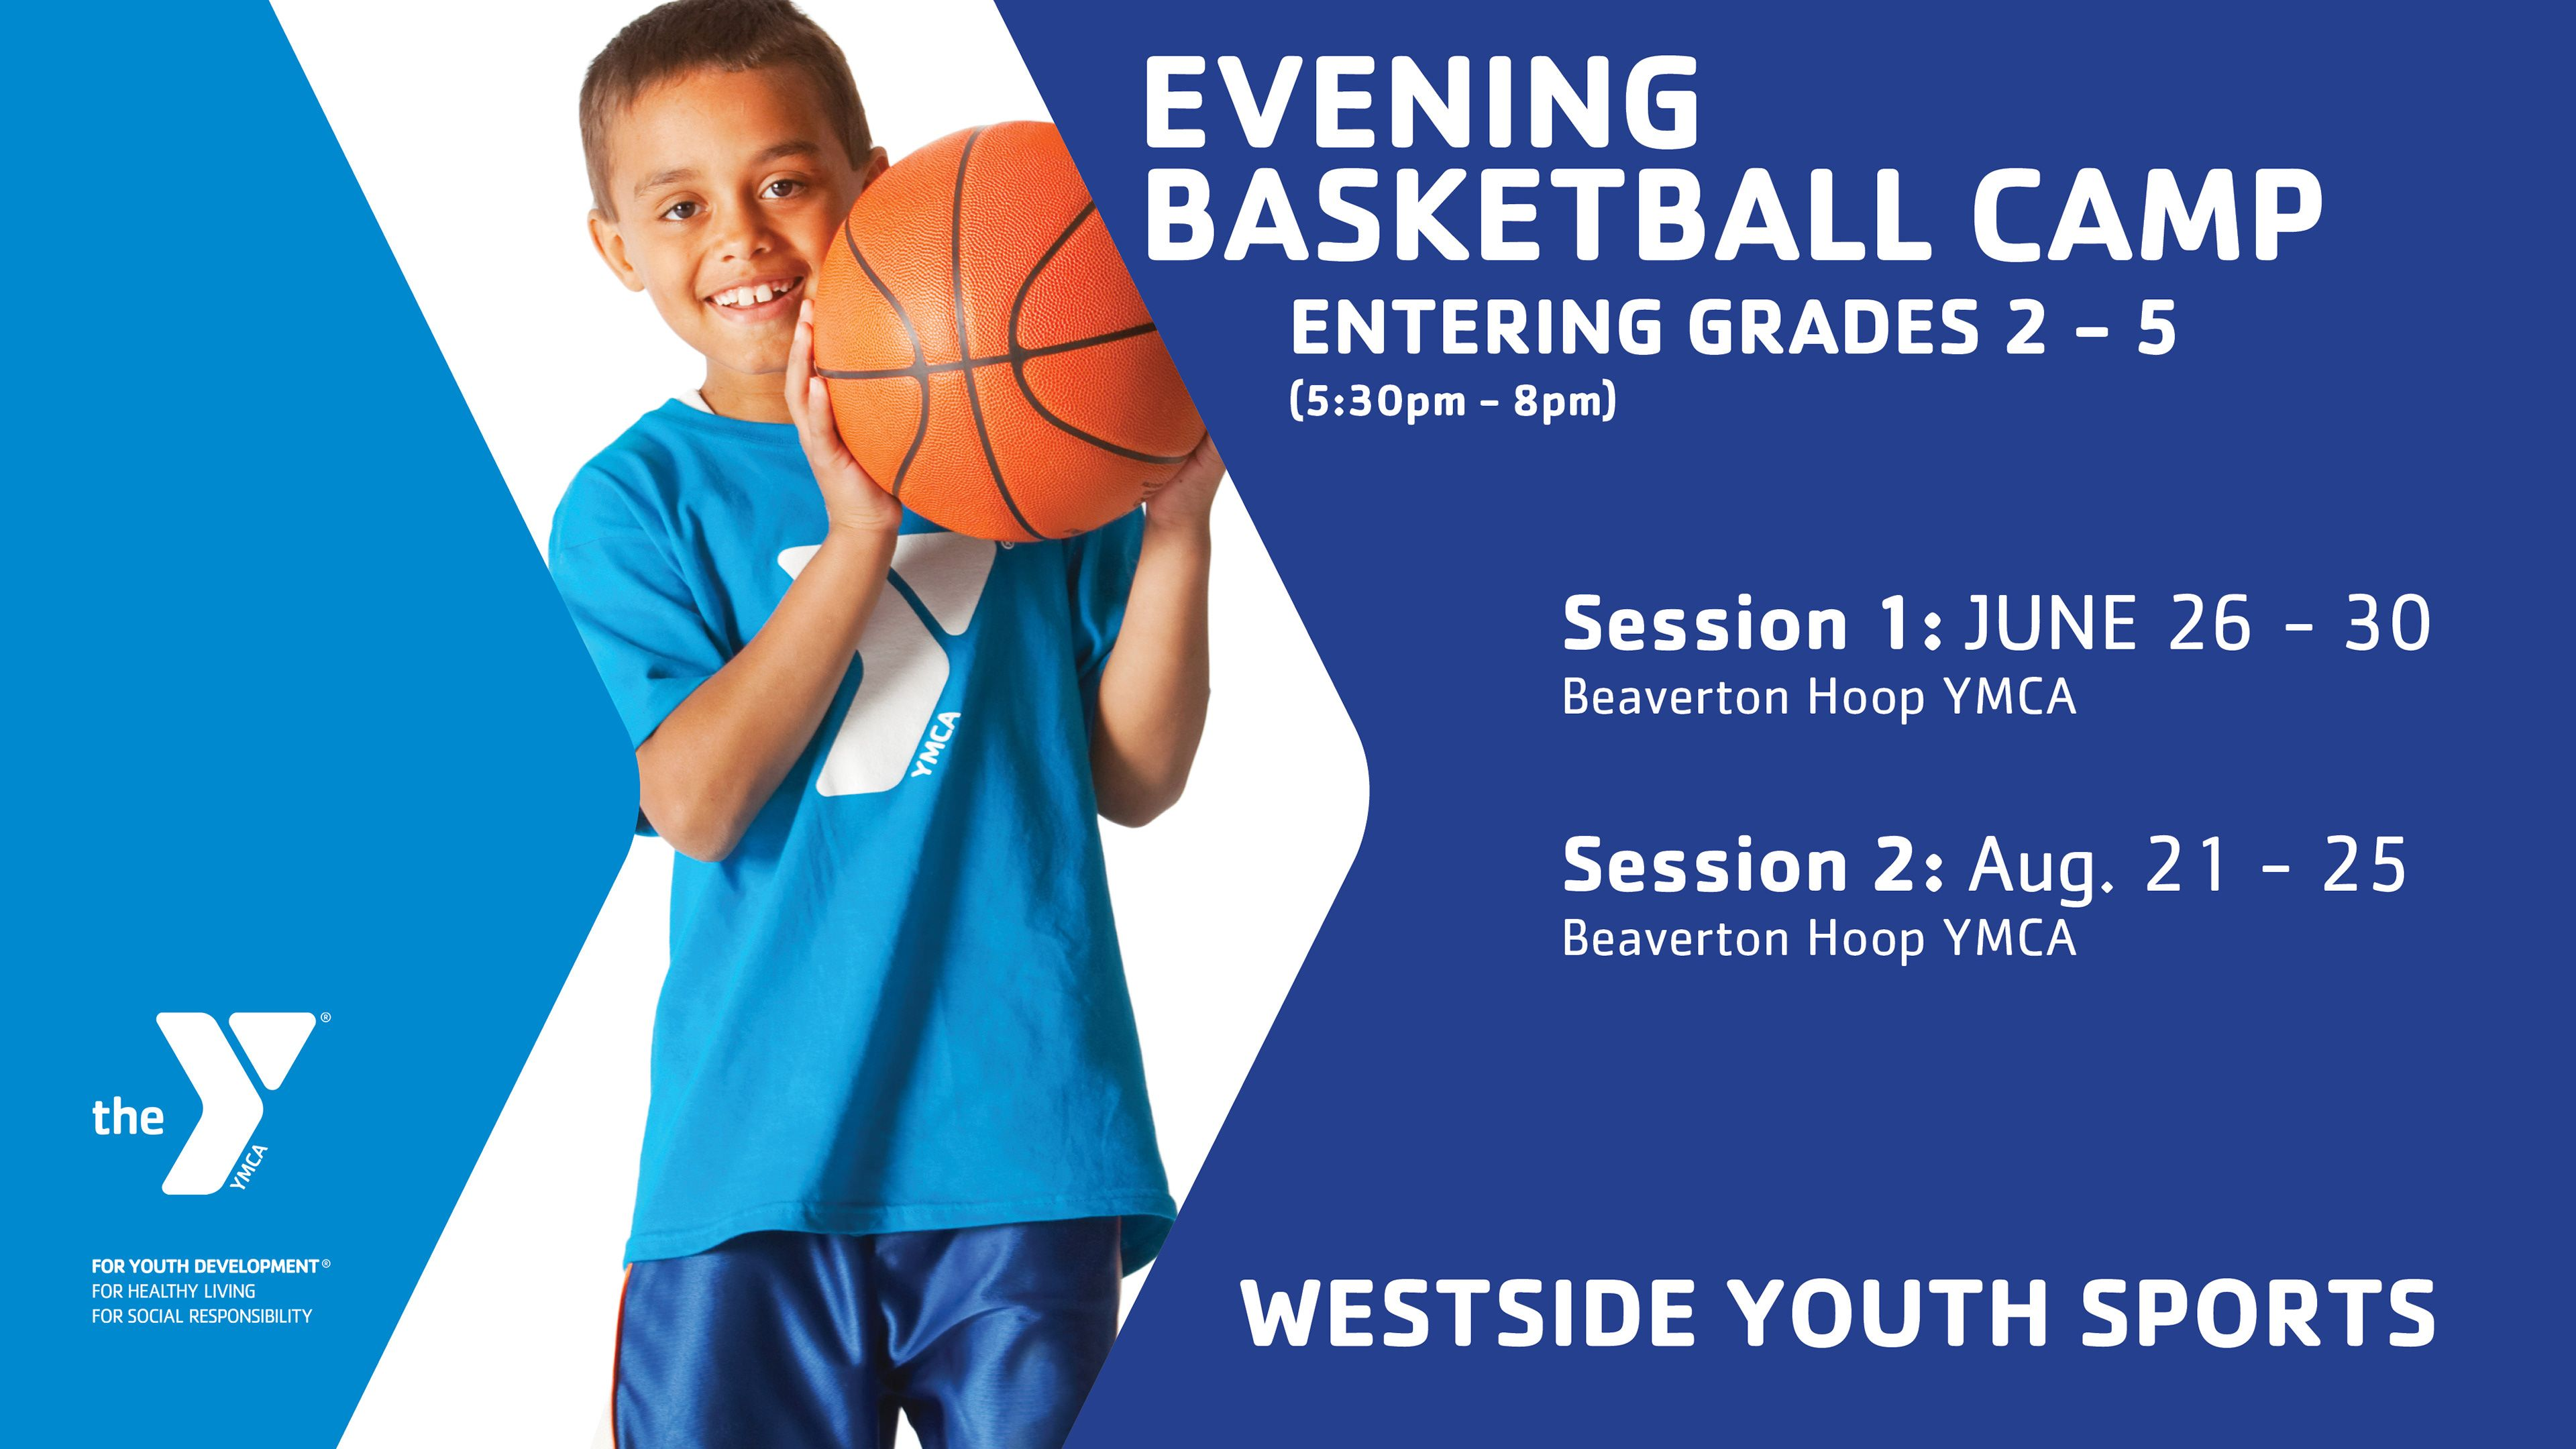 2017 Ymca Of Columbia Willamette Beaverton Hoop Ymca Offers A Variety Of Sports And Enrichments Camps Through The Westside Ymca Youth Sports Marketing Poster